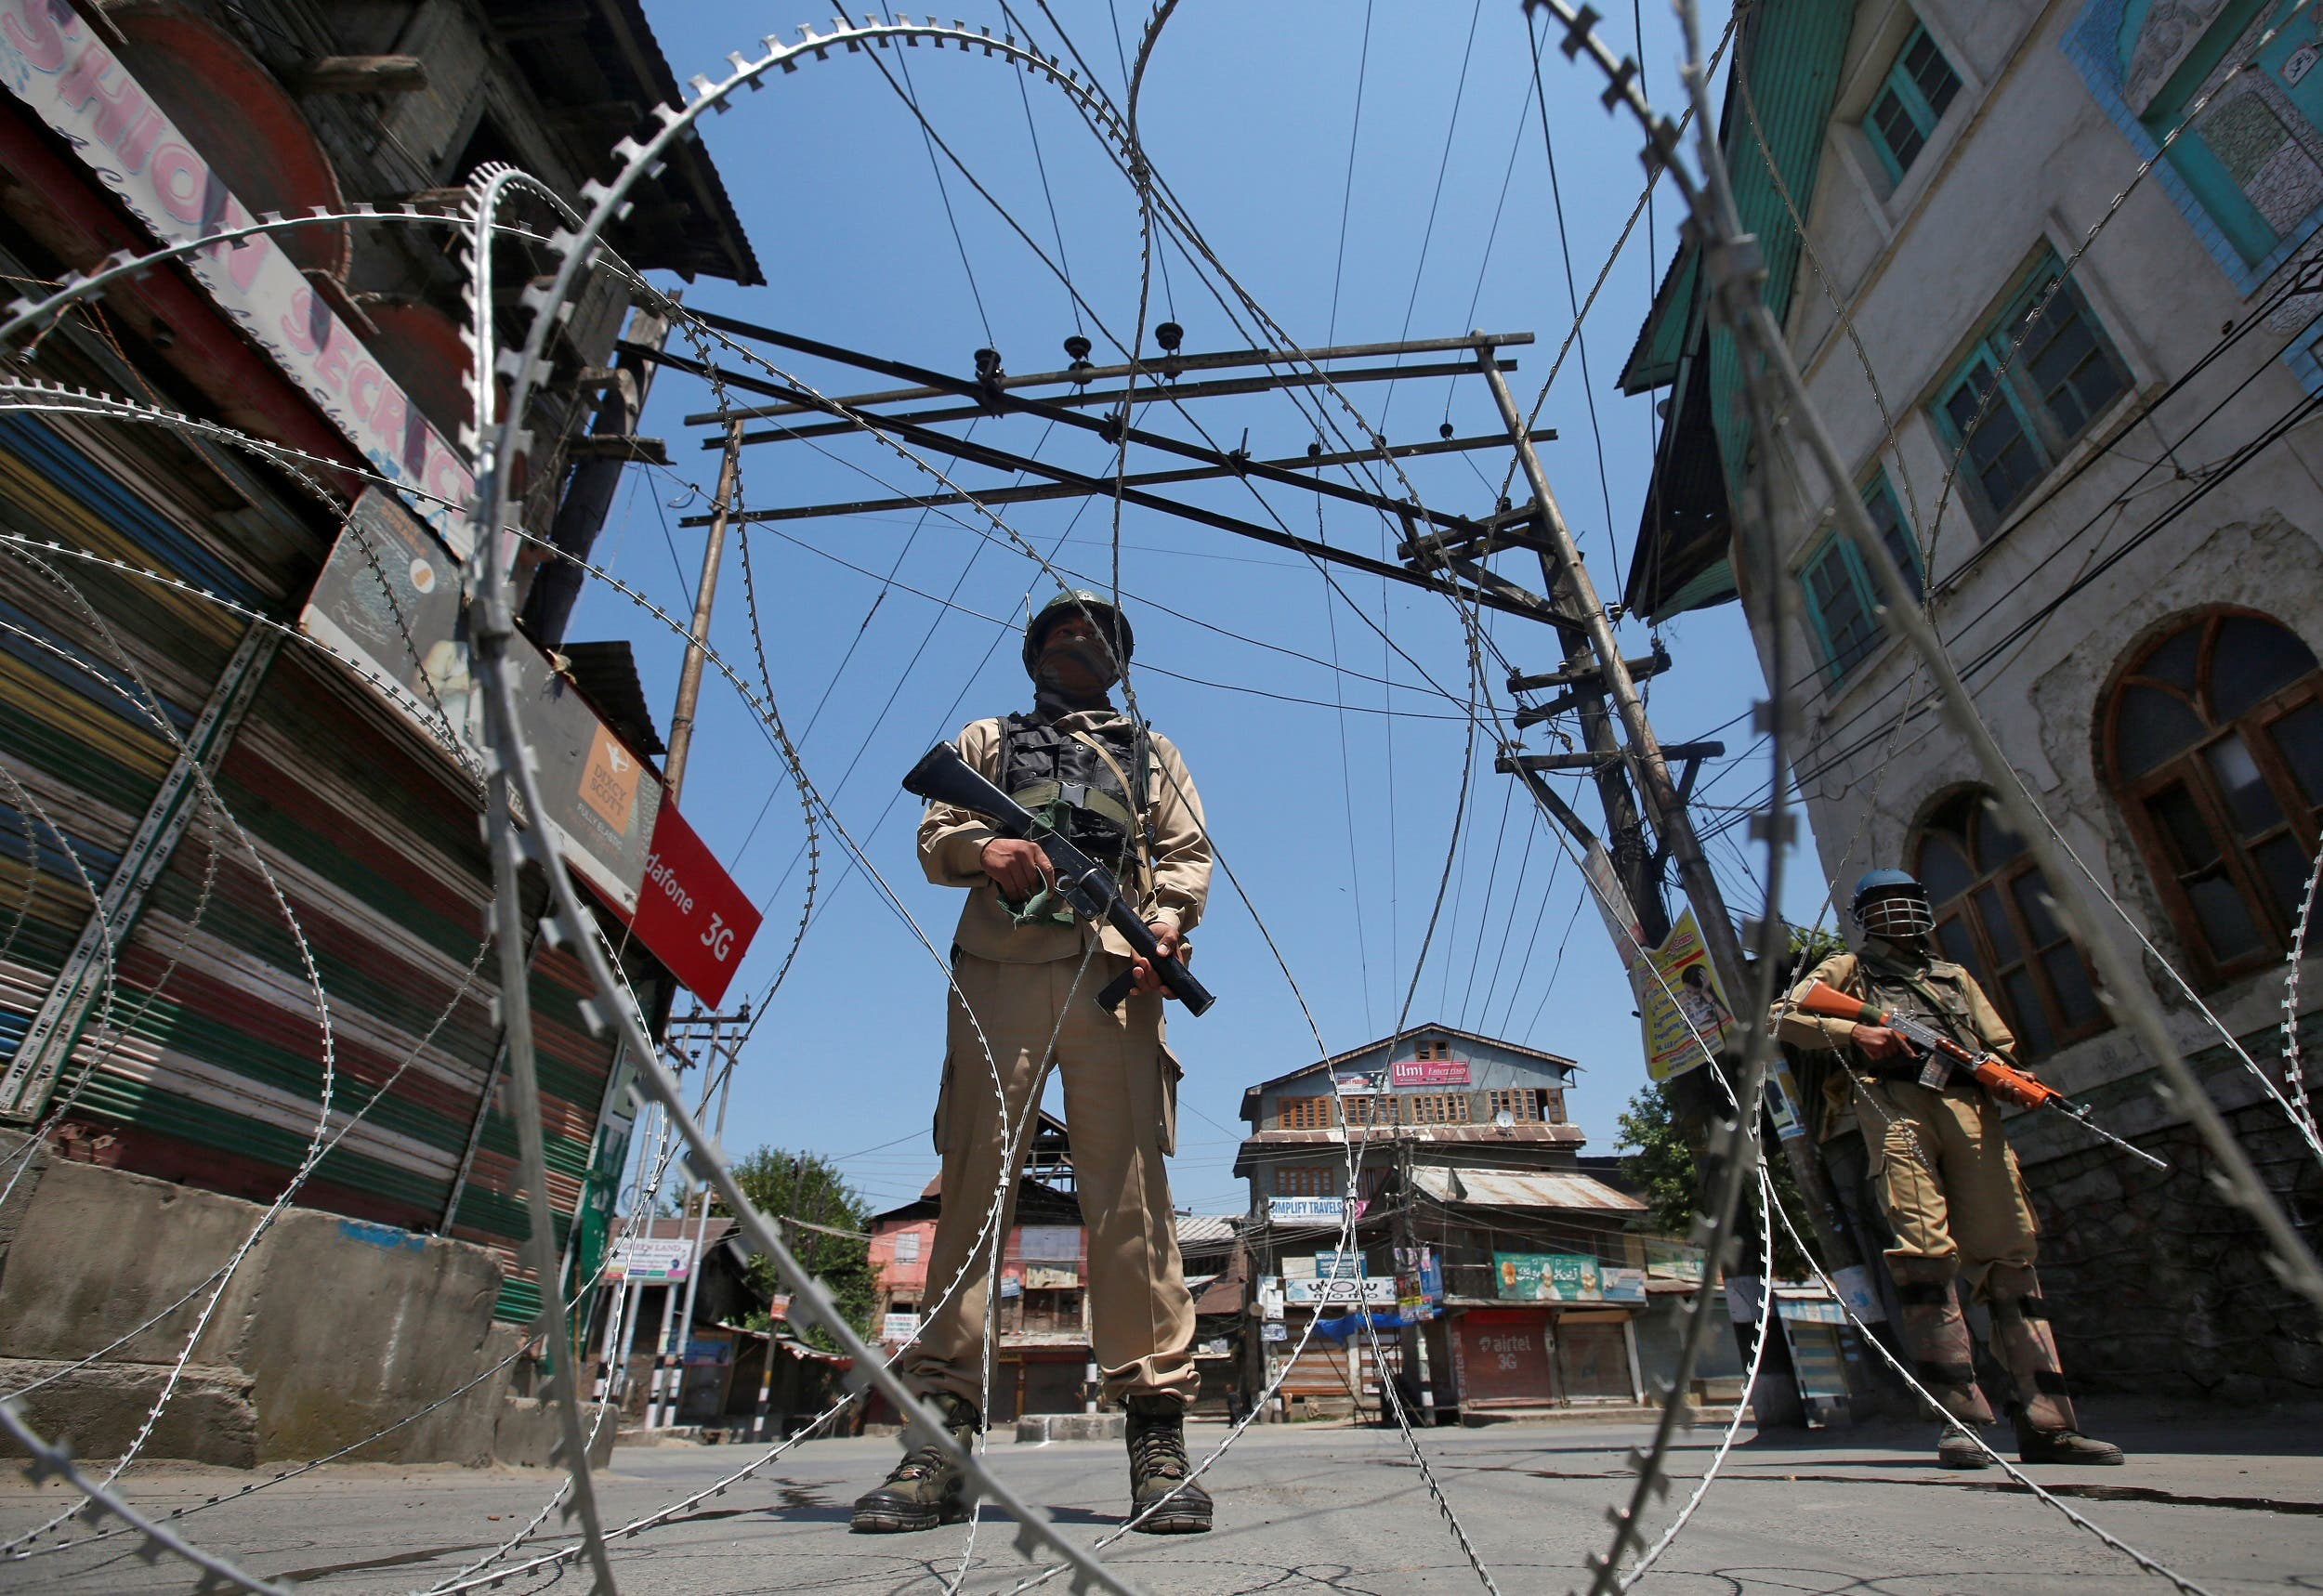 Indian policemen stand guard behind concertina wire during a strike in Srinagar on May 21, 2018. (Reuters)